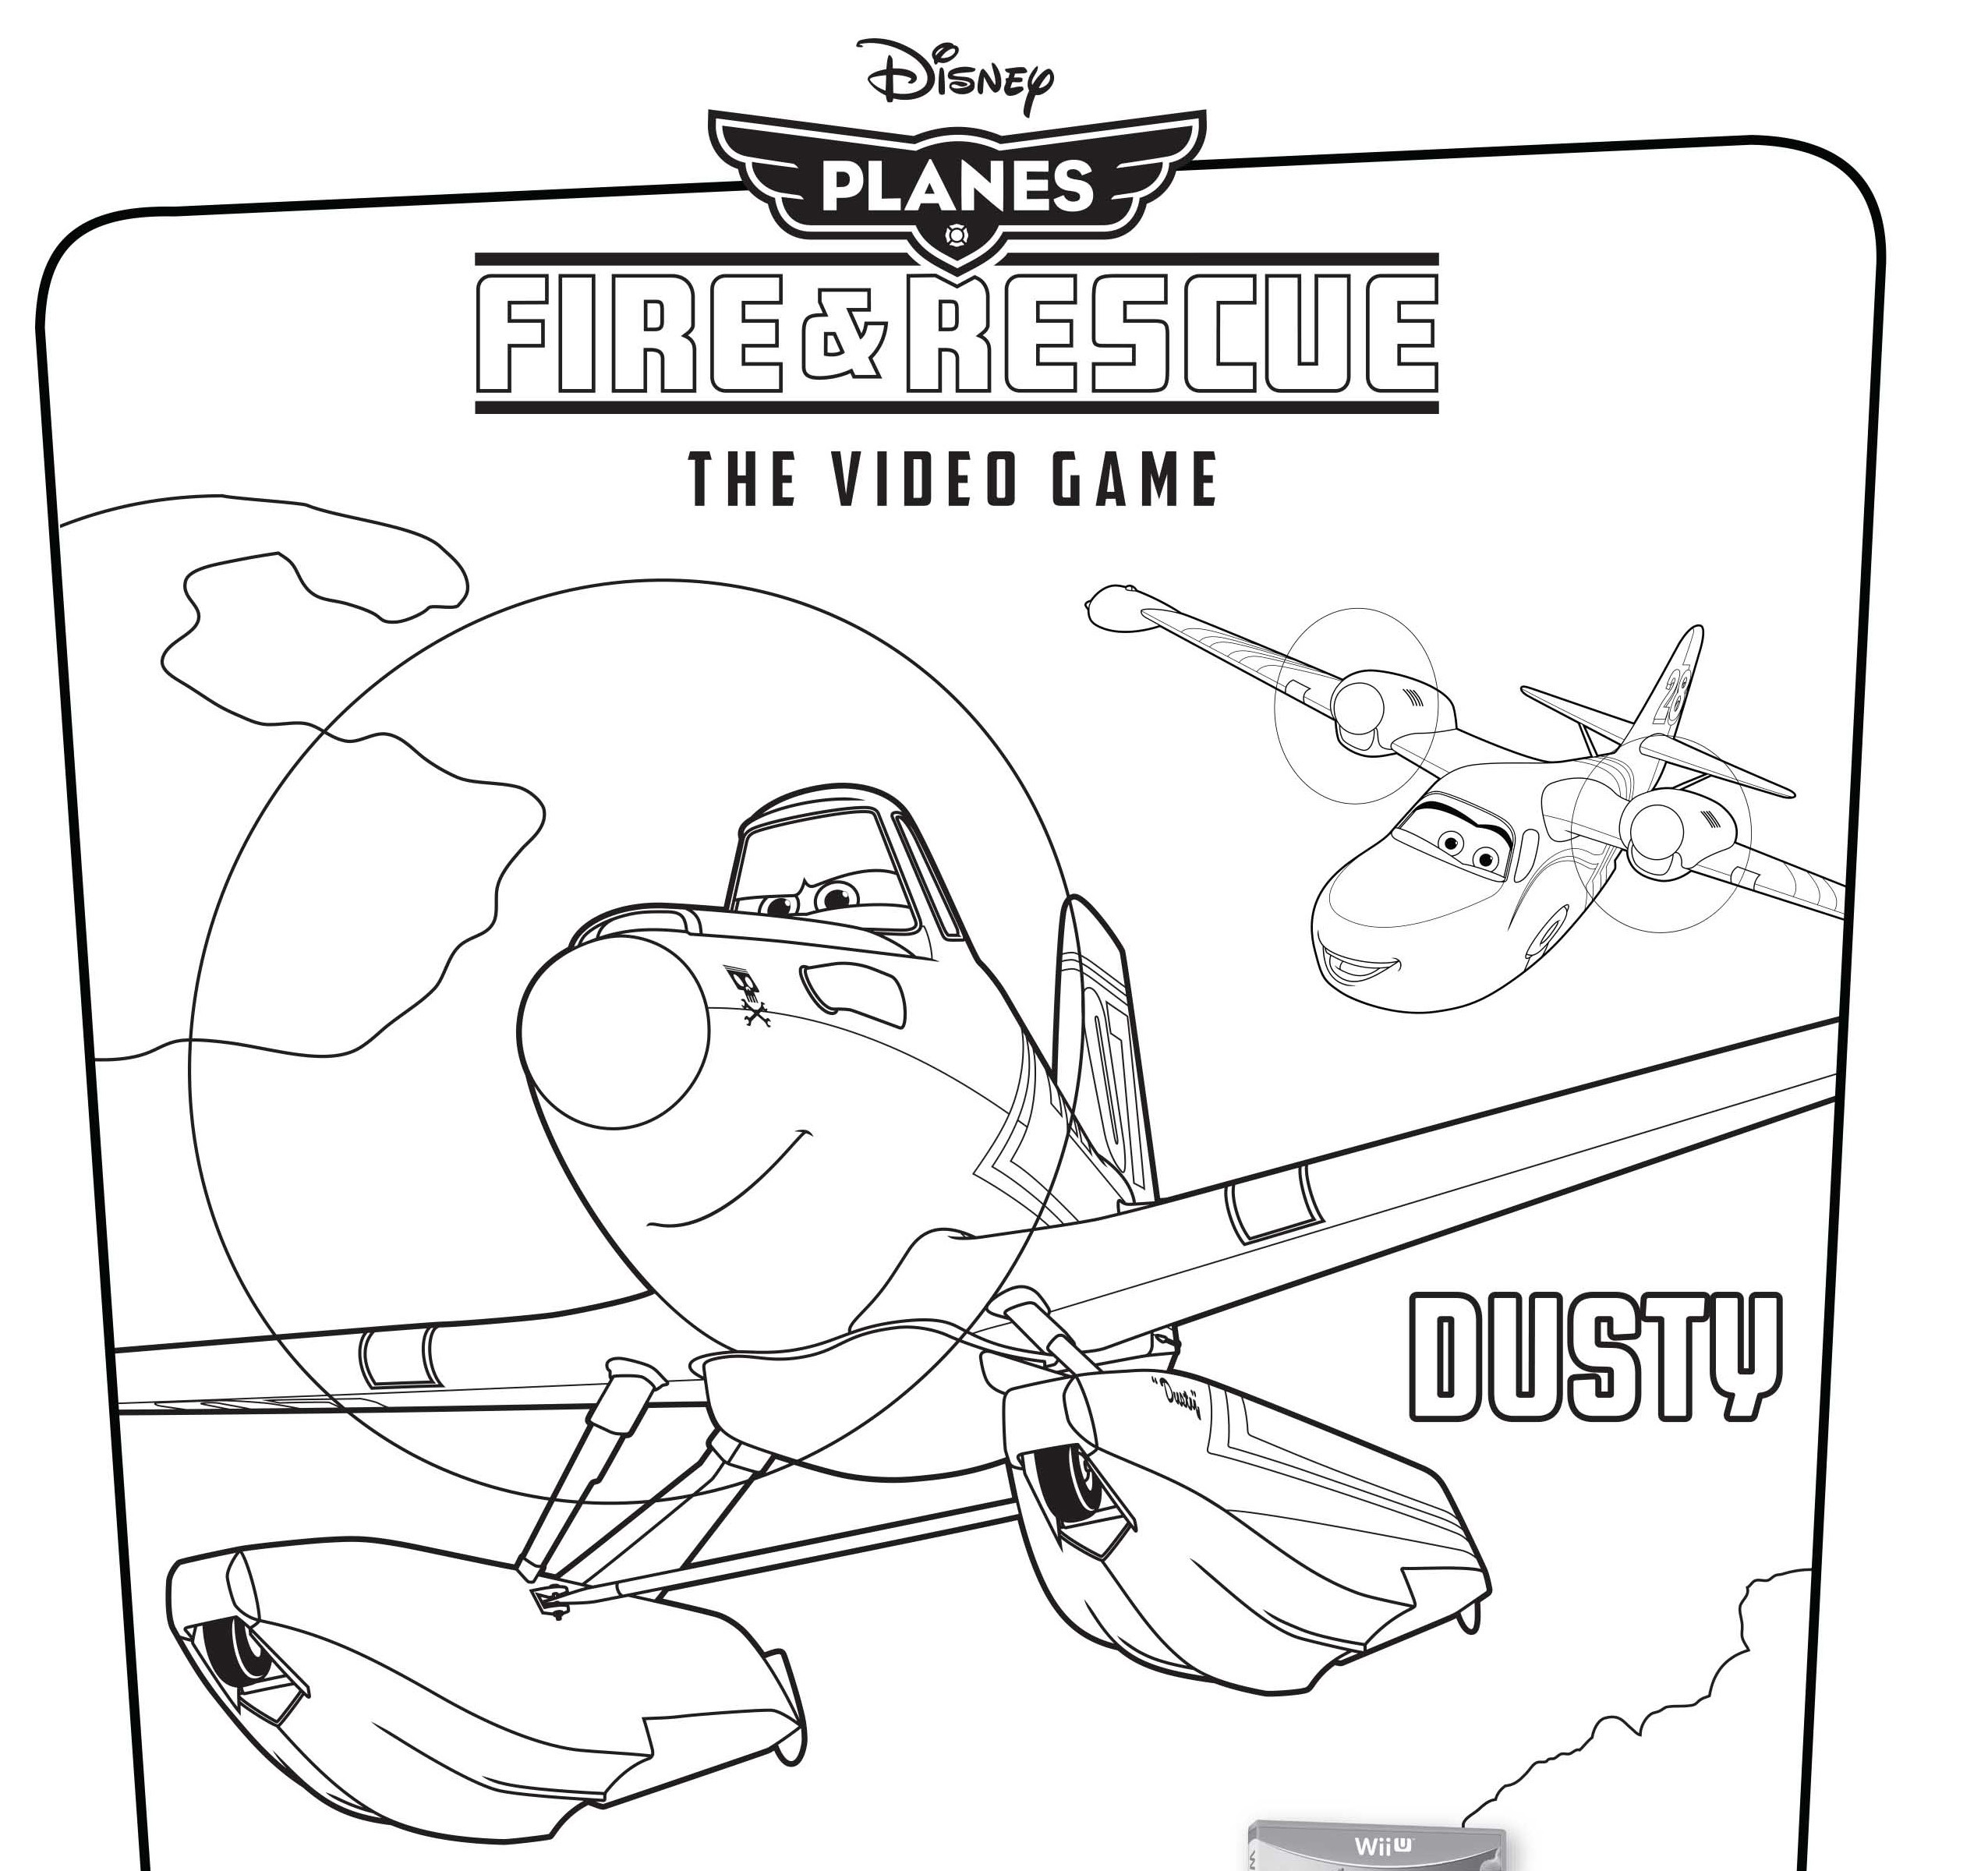 Best ideas about Disney Planes Coloring Pages For Kids . Save or Pin Disney s Planes Fire & Rescue Video Game Coloring Pages Now.